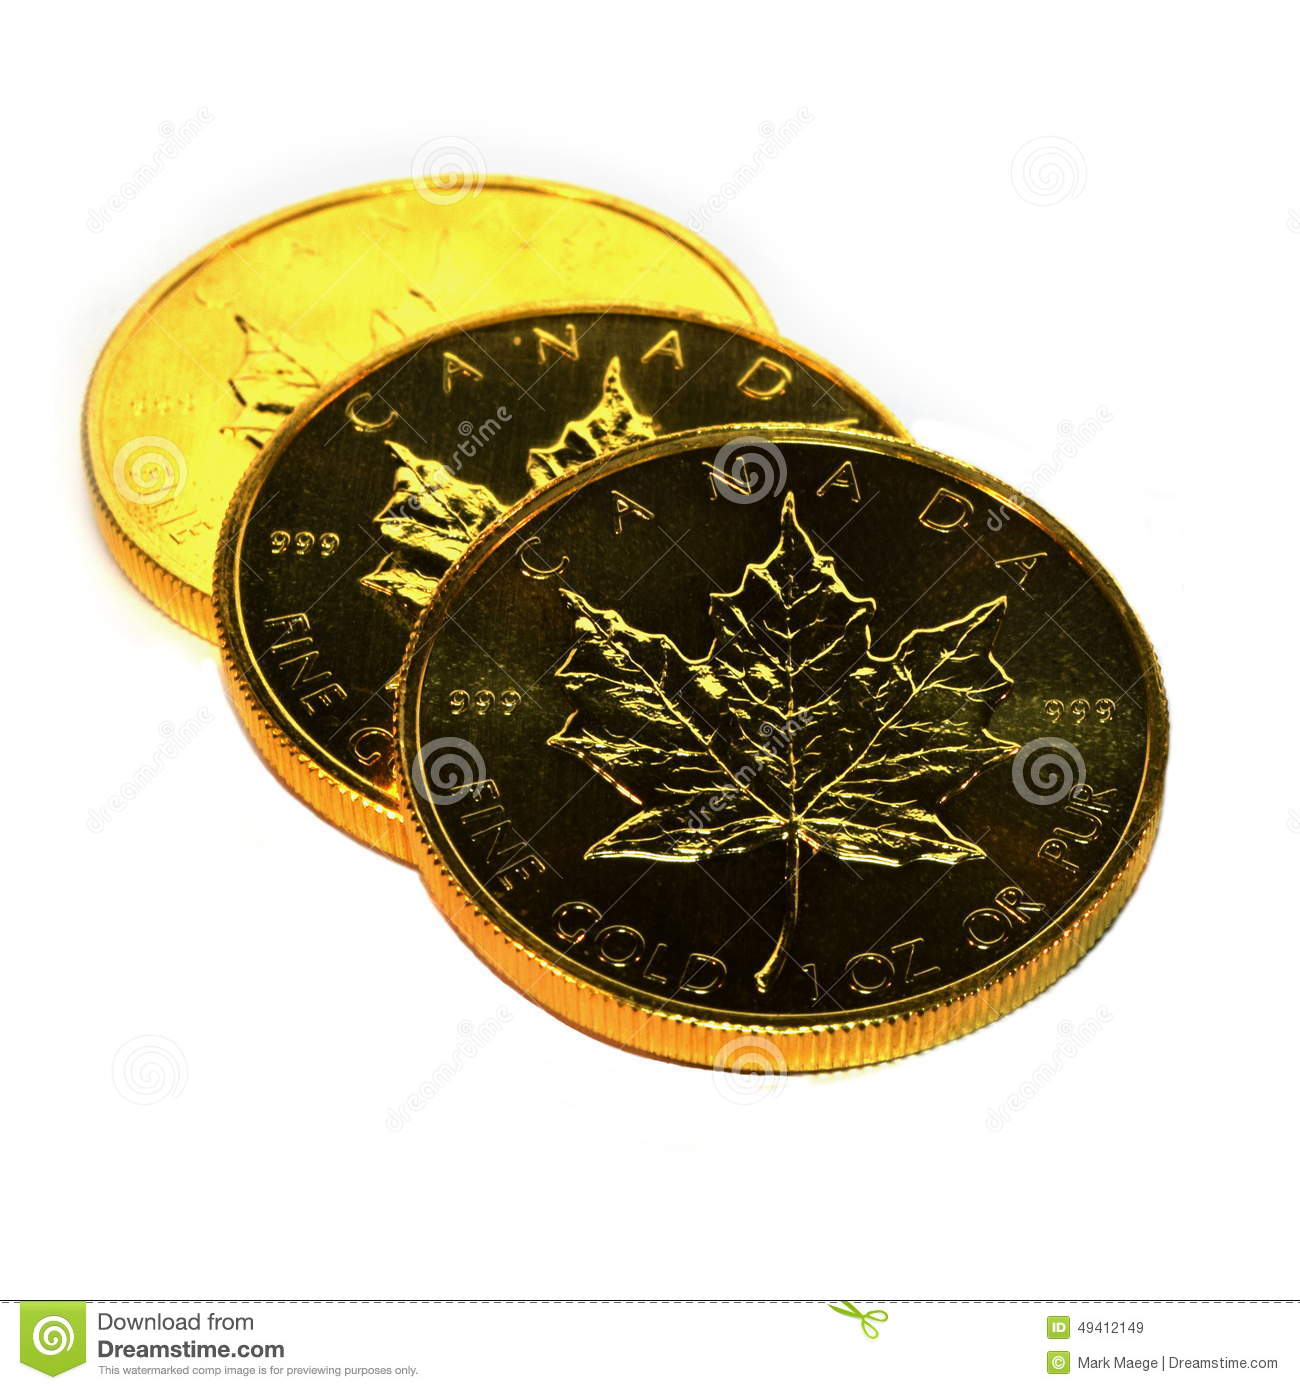 Precious Metals Money Gold Maple Leaf One Ounce Coins - Investment Finance Illustration Isolated